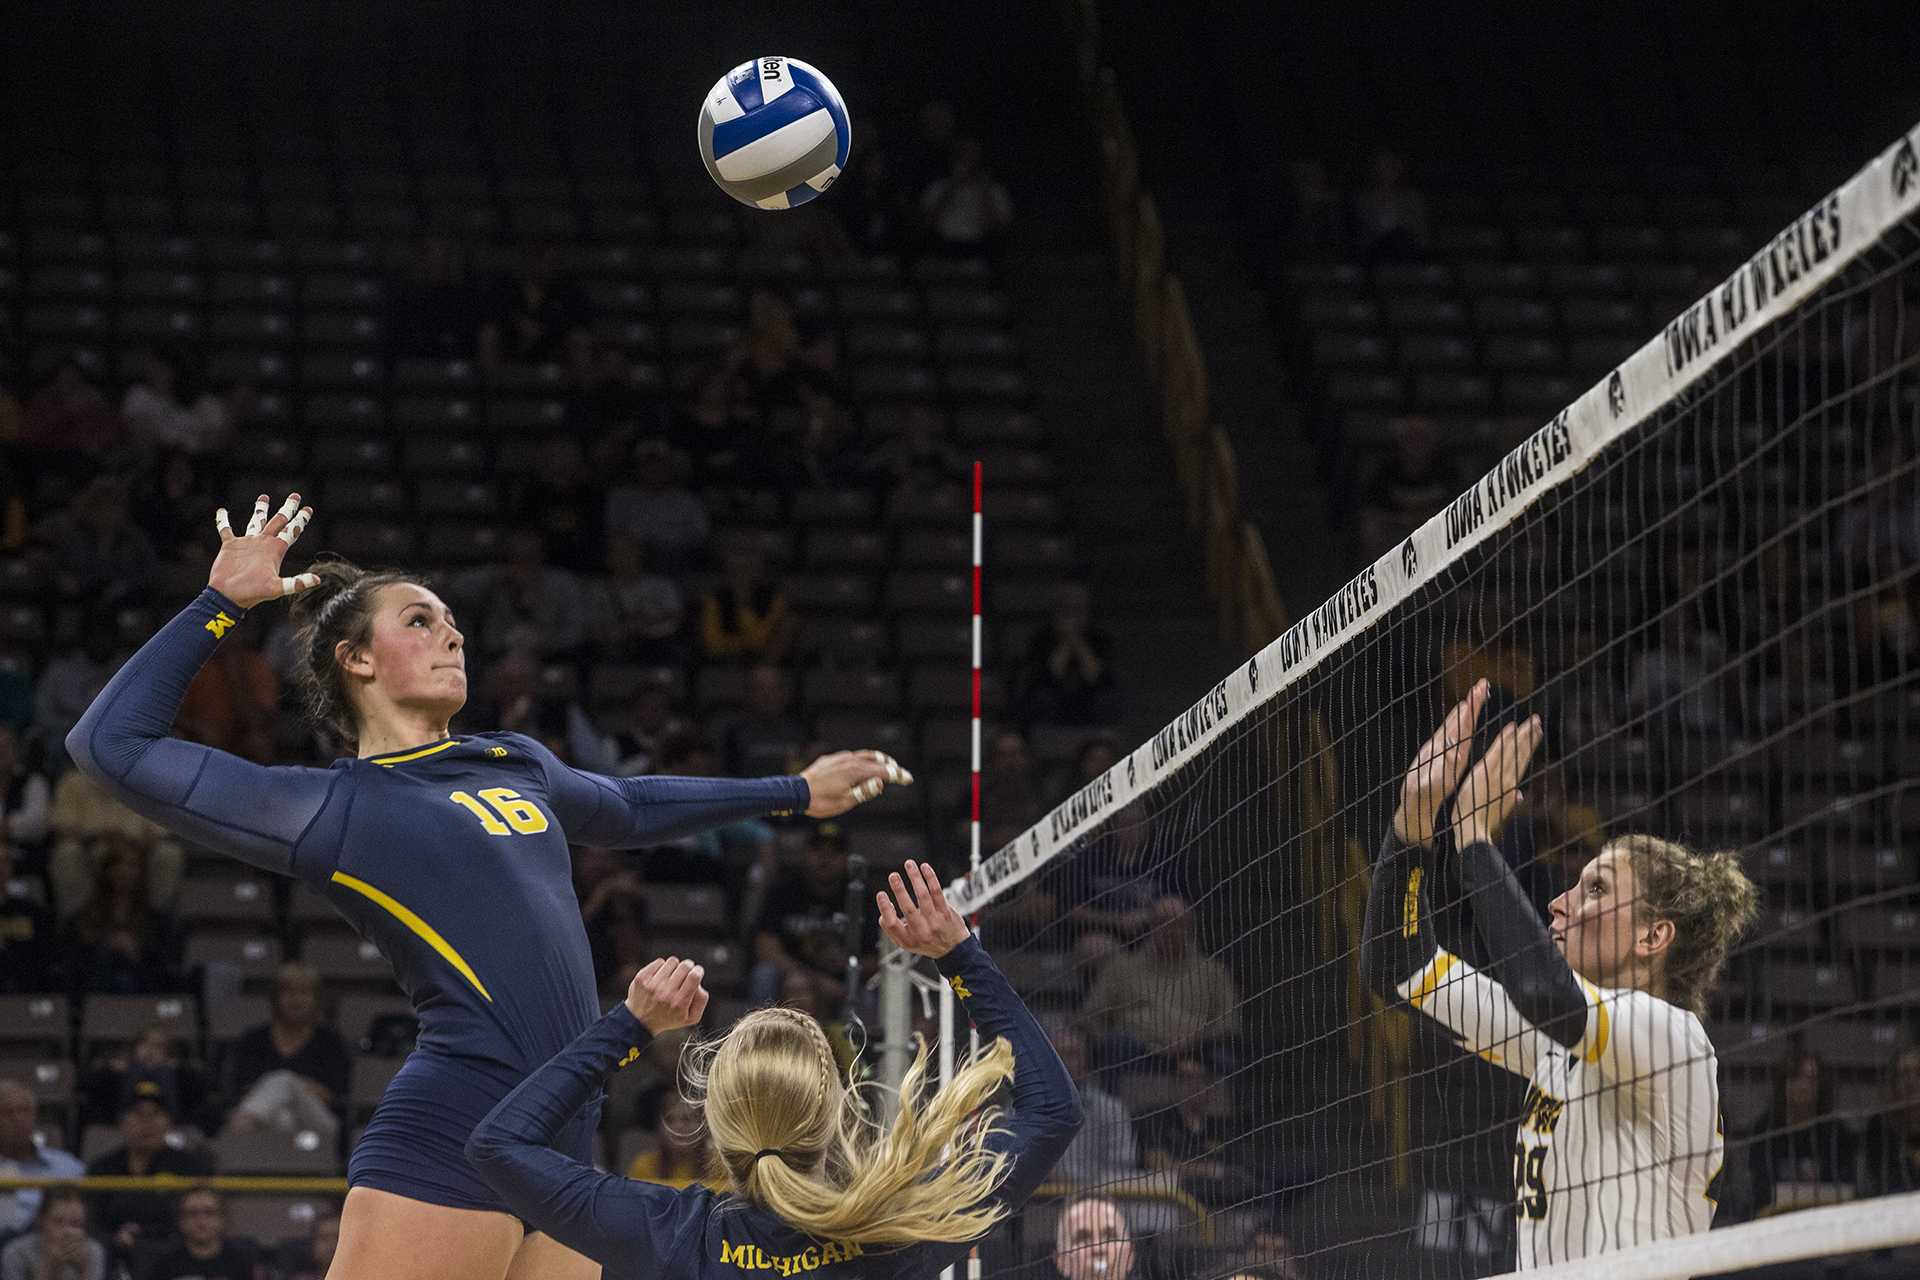 Michigan's Cori Crocker spikes the ball during a match against Iowa at Carver-Hawkeye Arena on Wednesday, Oct. 4, 2017. Iowa defeated Michigan 3 sets to 1. (Nick Rohlman/The Daily Iowan)